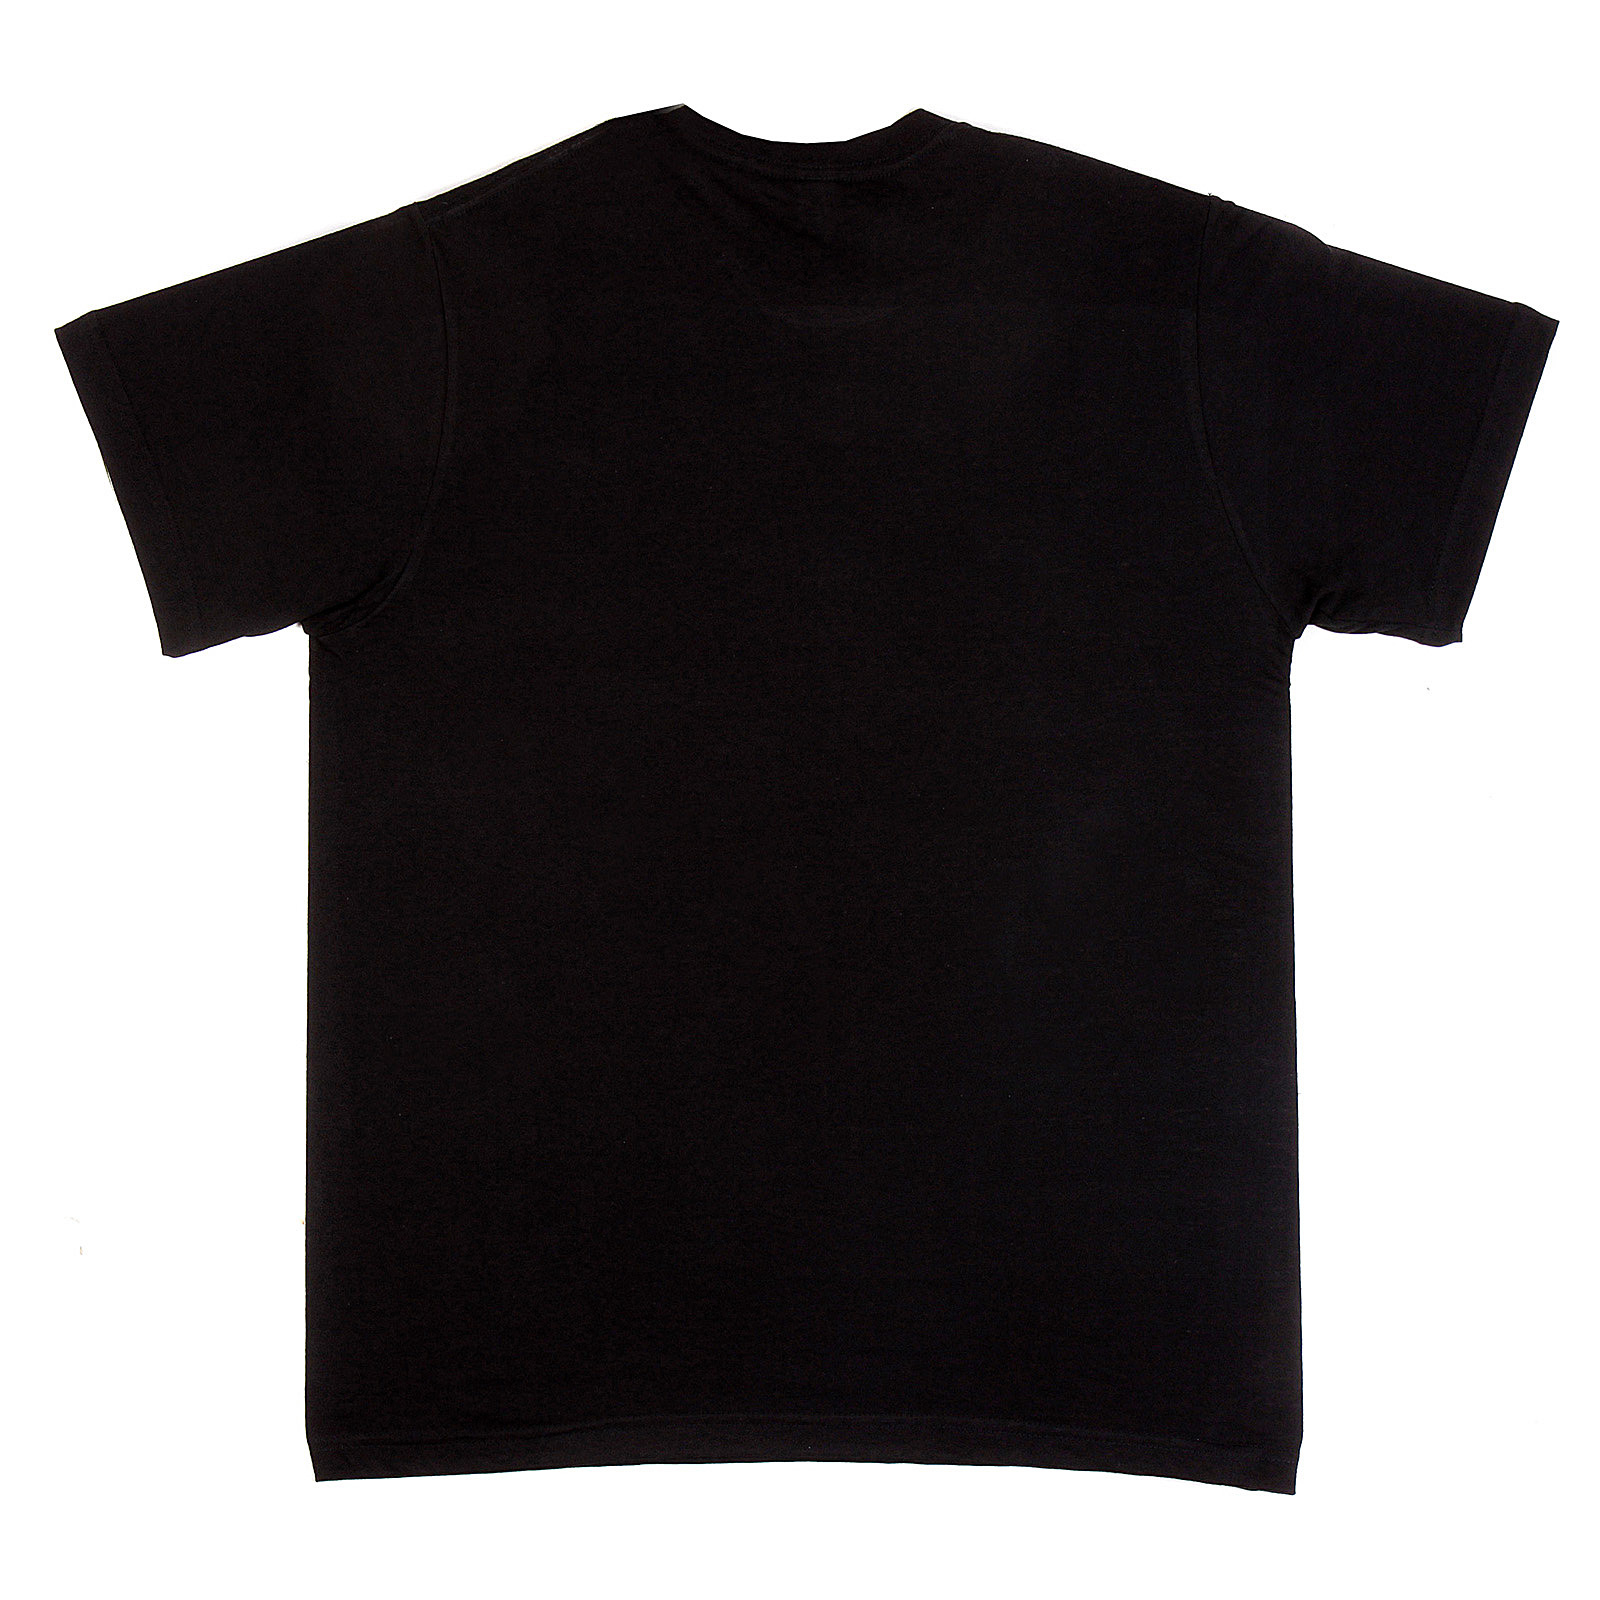 Buy plain black t shirt back view 51 off for T shirt plain black